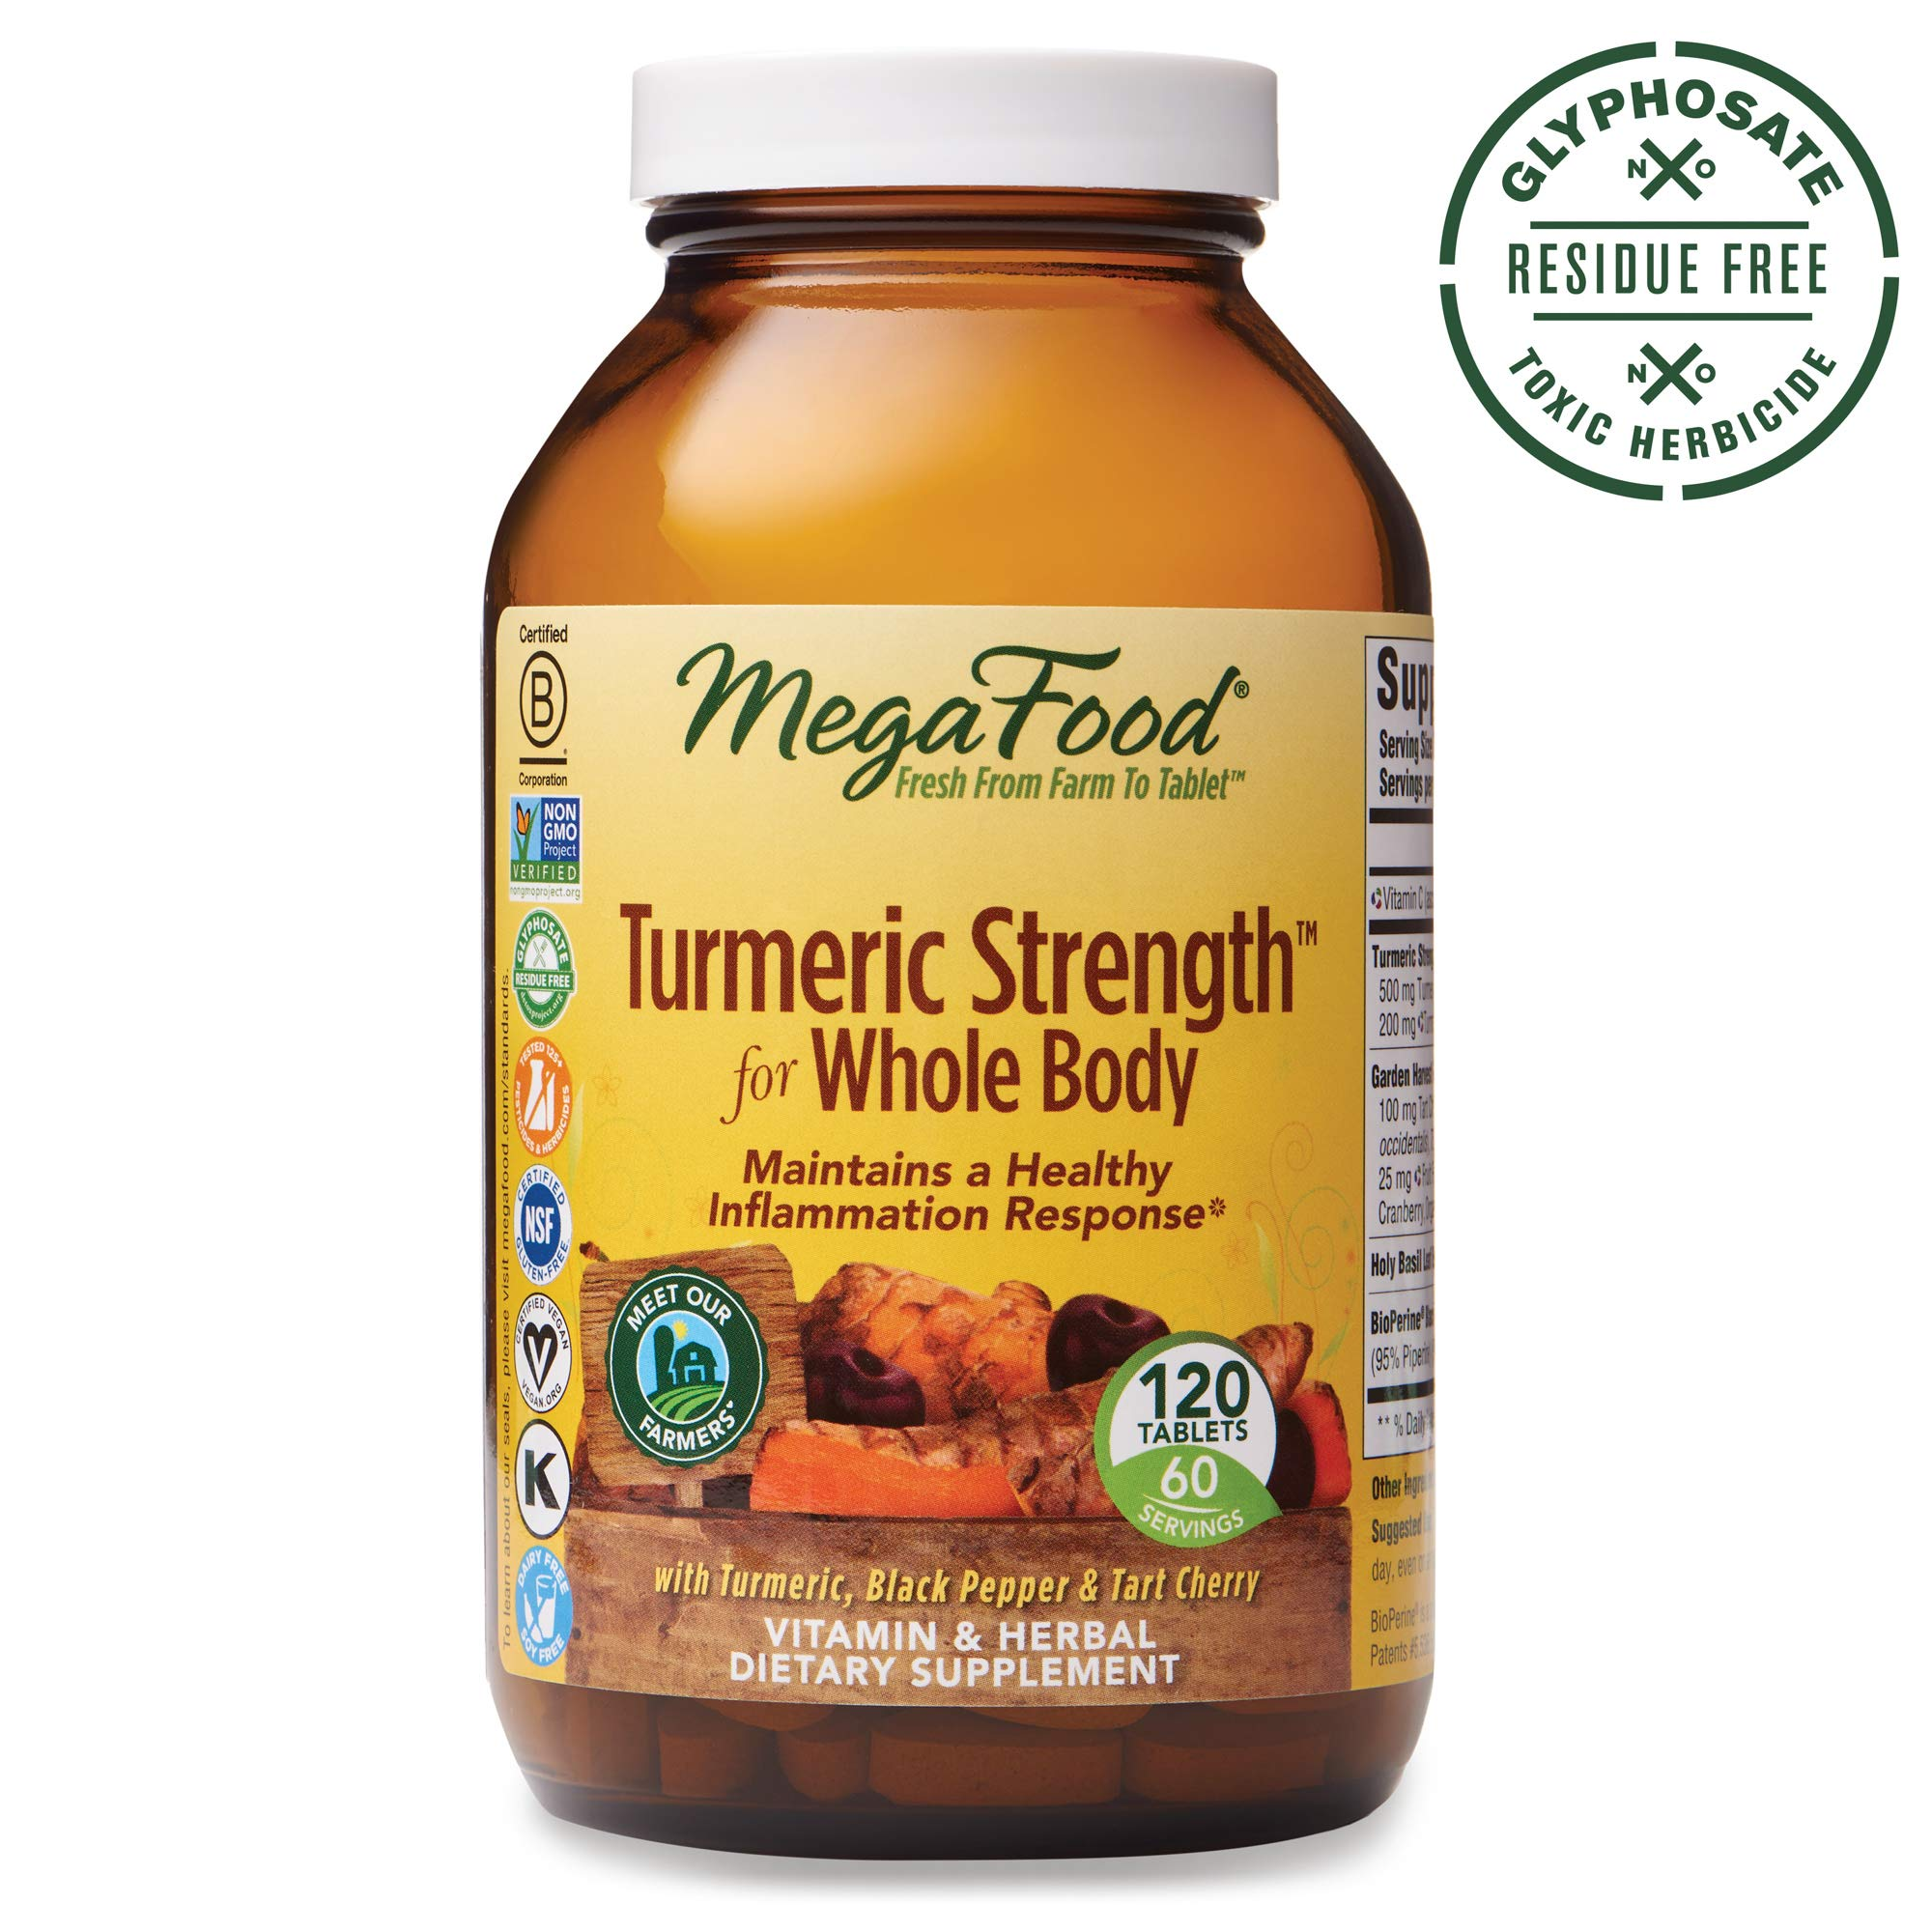 MegaFood, Turmeric Strength for Whole Body, Maintains a Healthy Inflammation Response, Vitamin and Herbal Dietary Supplement, Gluten Free, Vegan, 120 Tablets (60 Servings) (FFP)